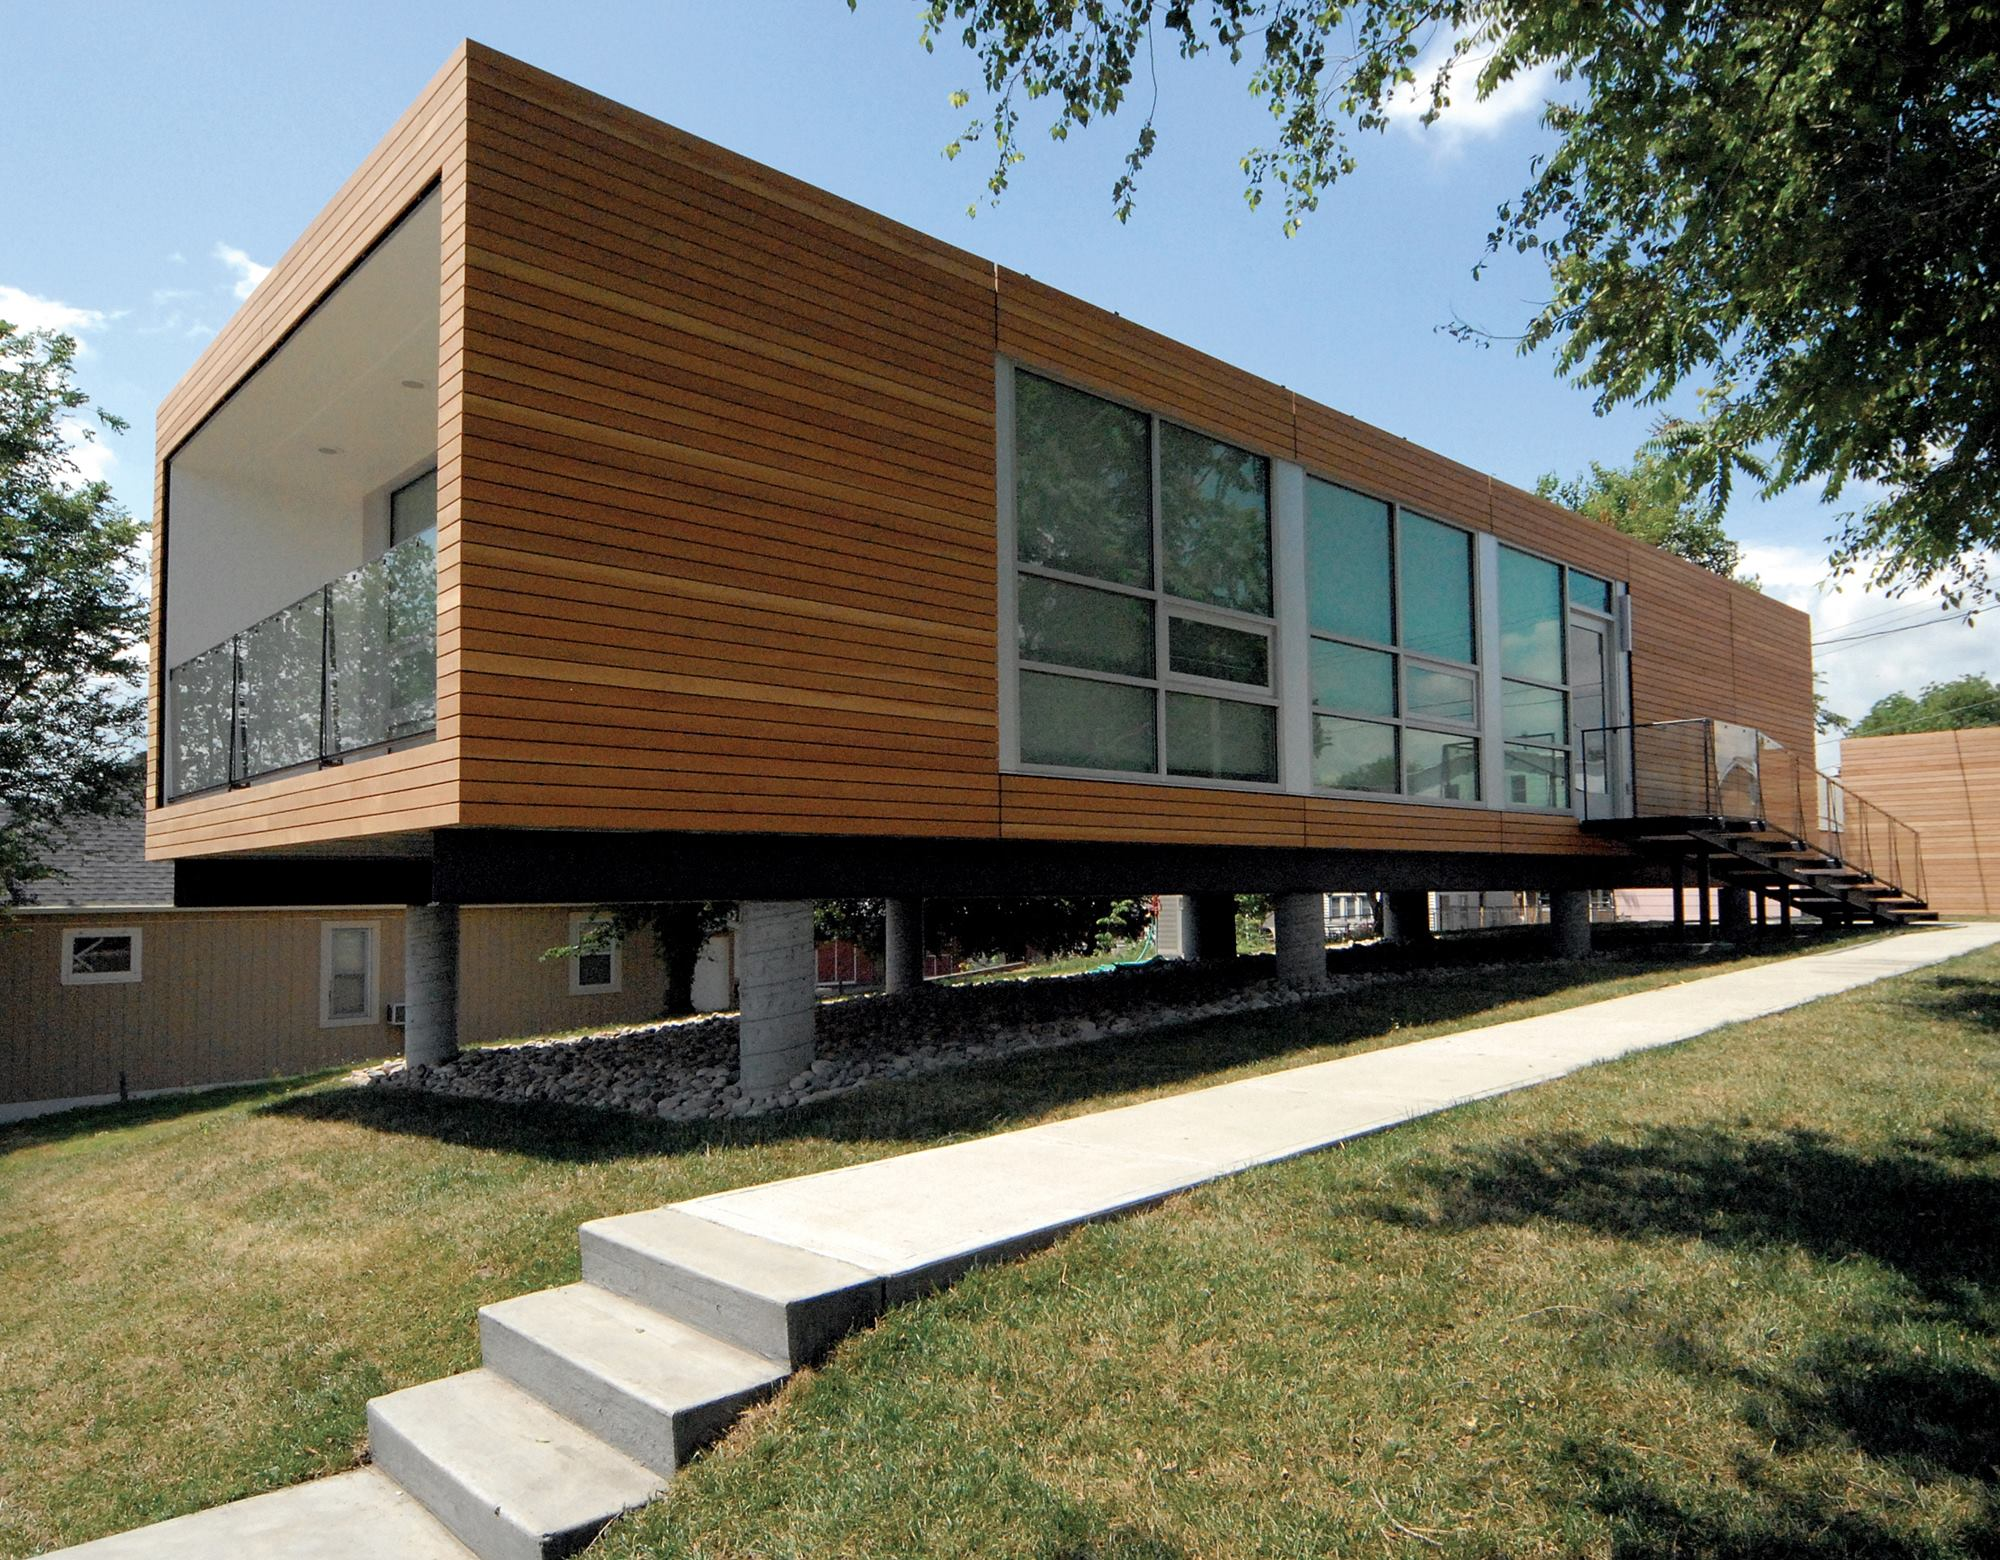 Lawrence, KS esidential rchitect - ^